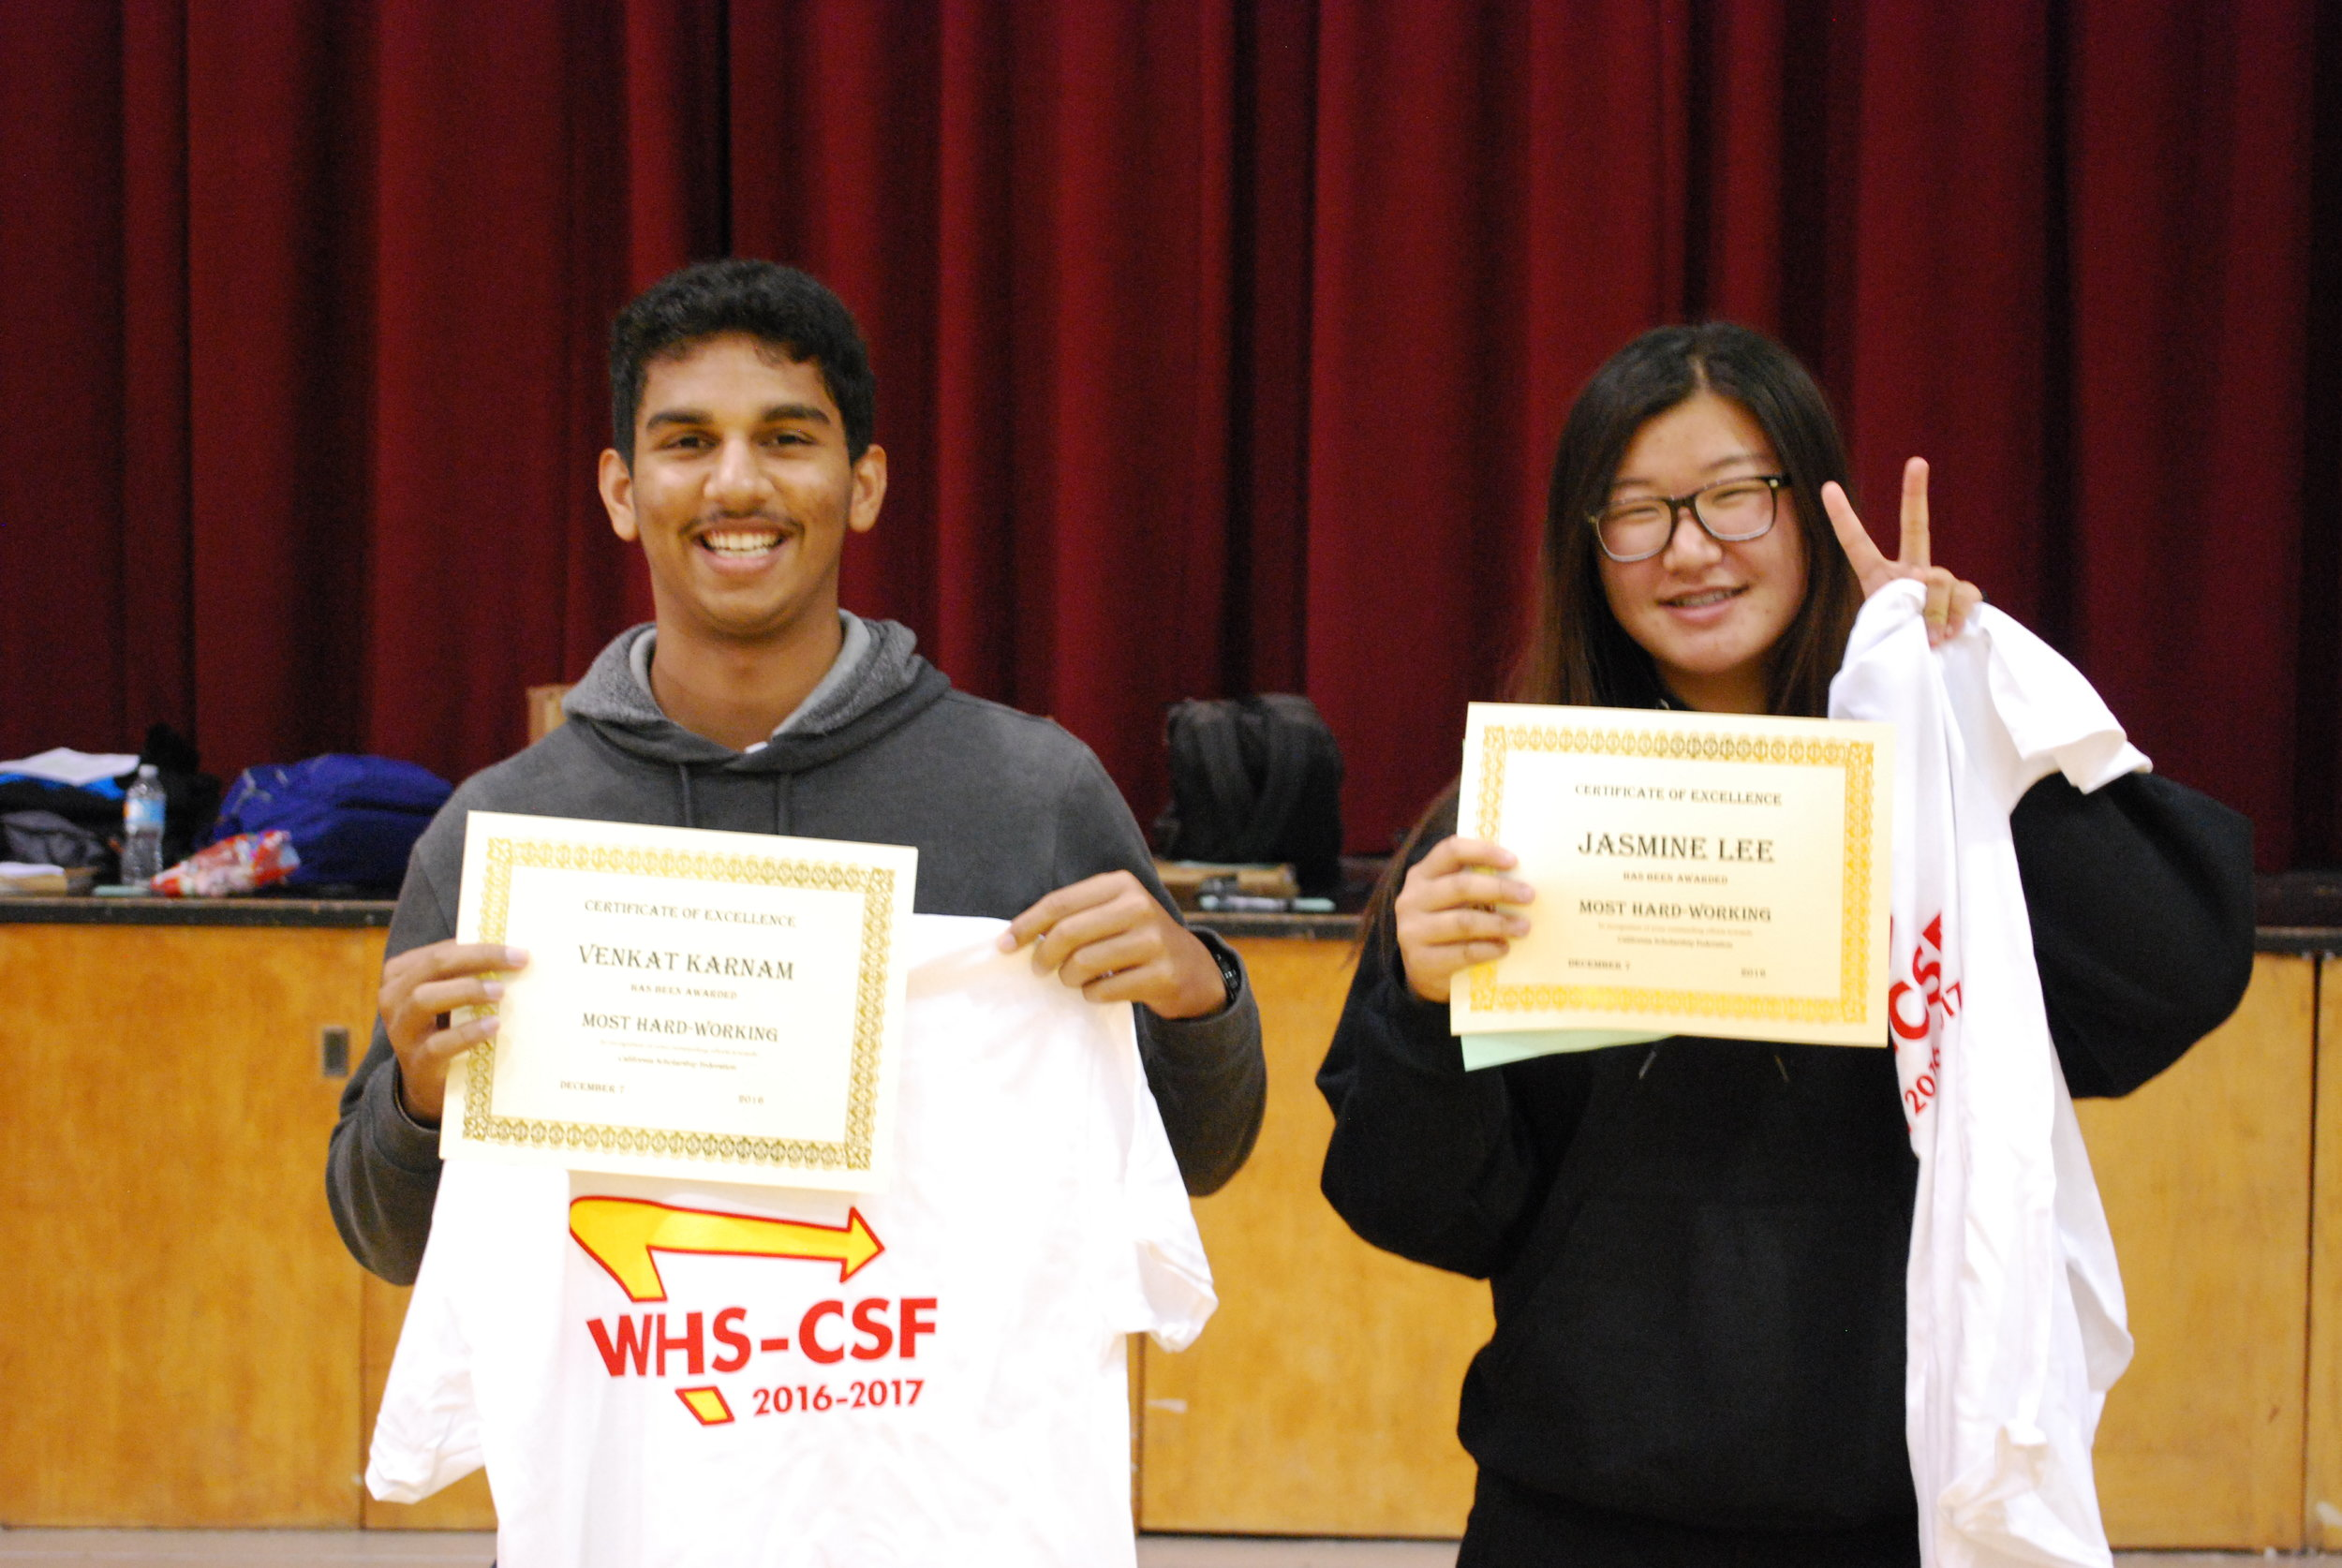 Congrats to our members of the month: Venkat Karnam and Jasmine Lee!